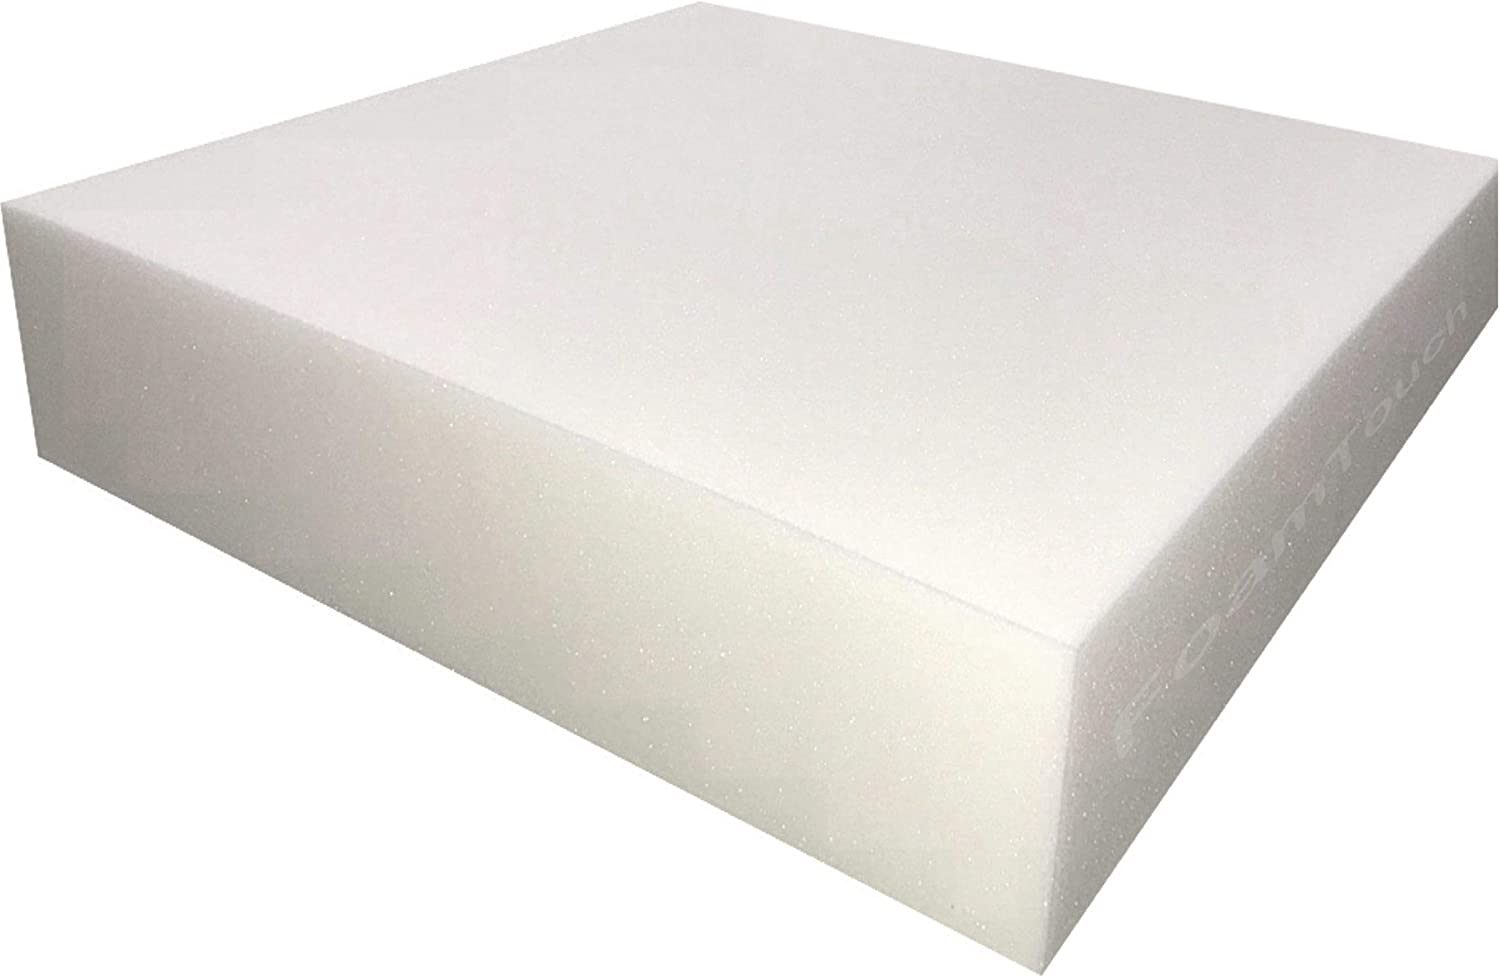 FoamTouch Upholstery Foam Cushion High Density 3 Height x 26 Width x 72 Length Made in USA